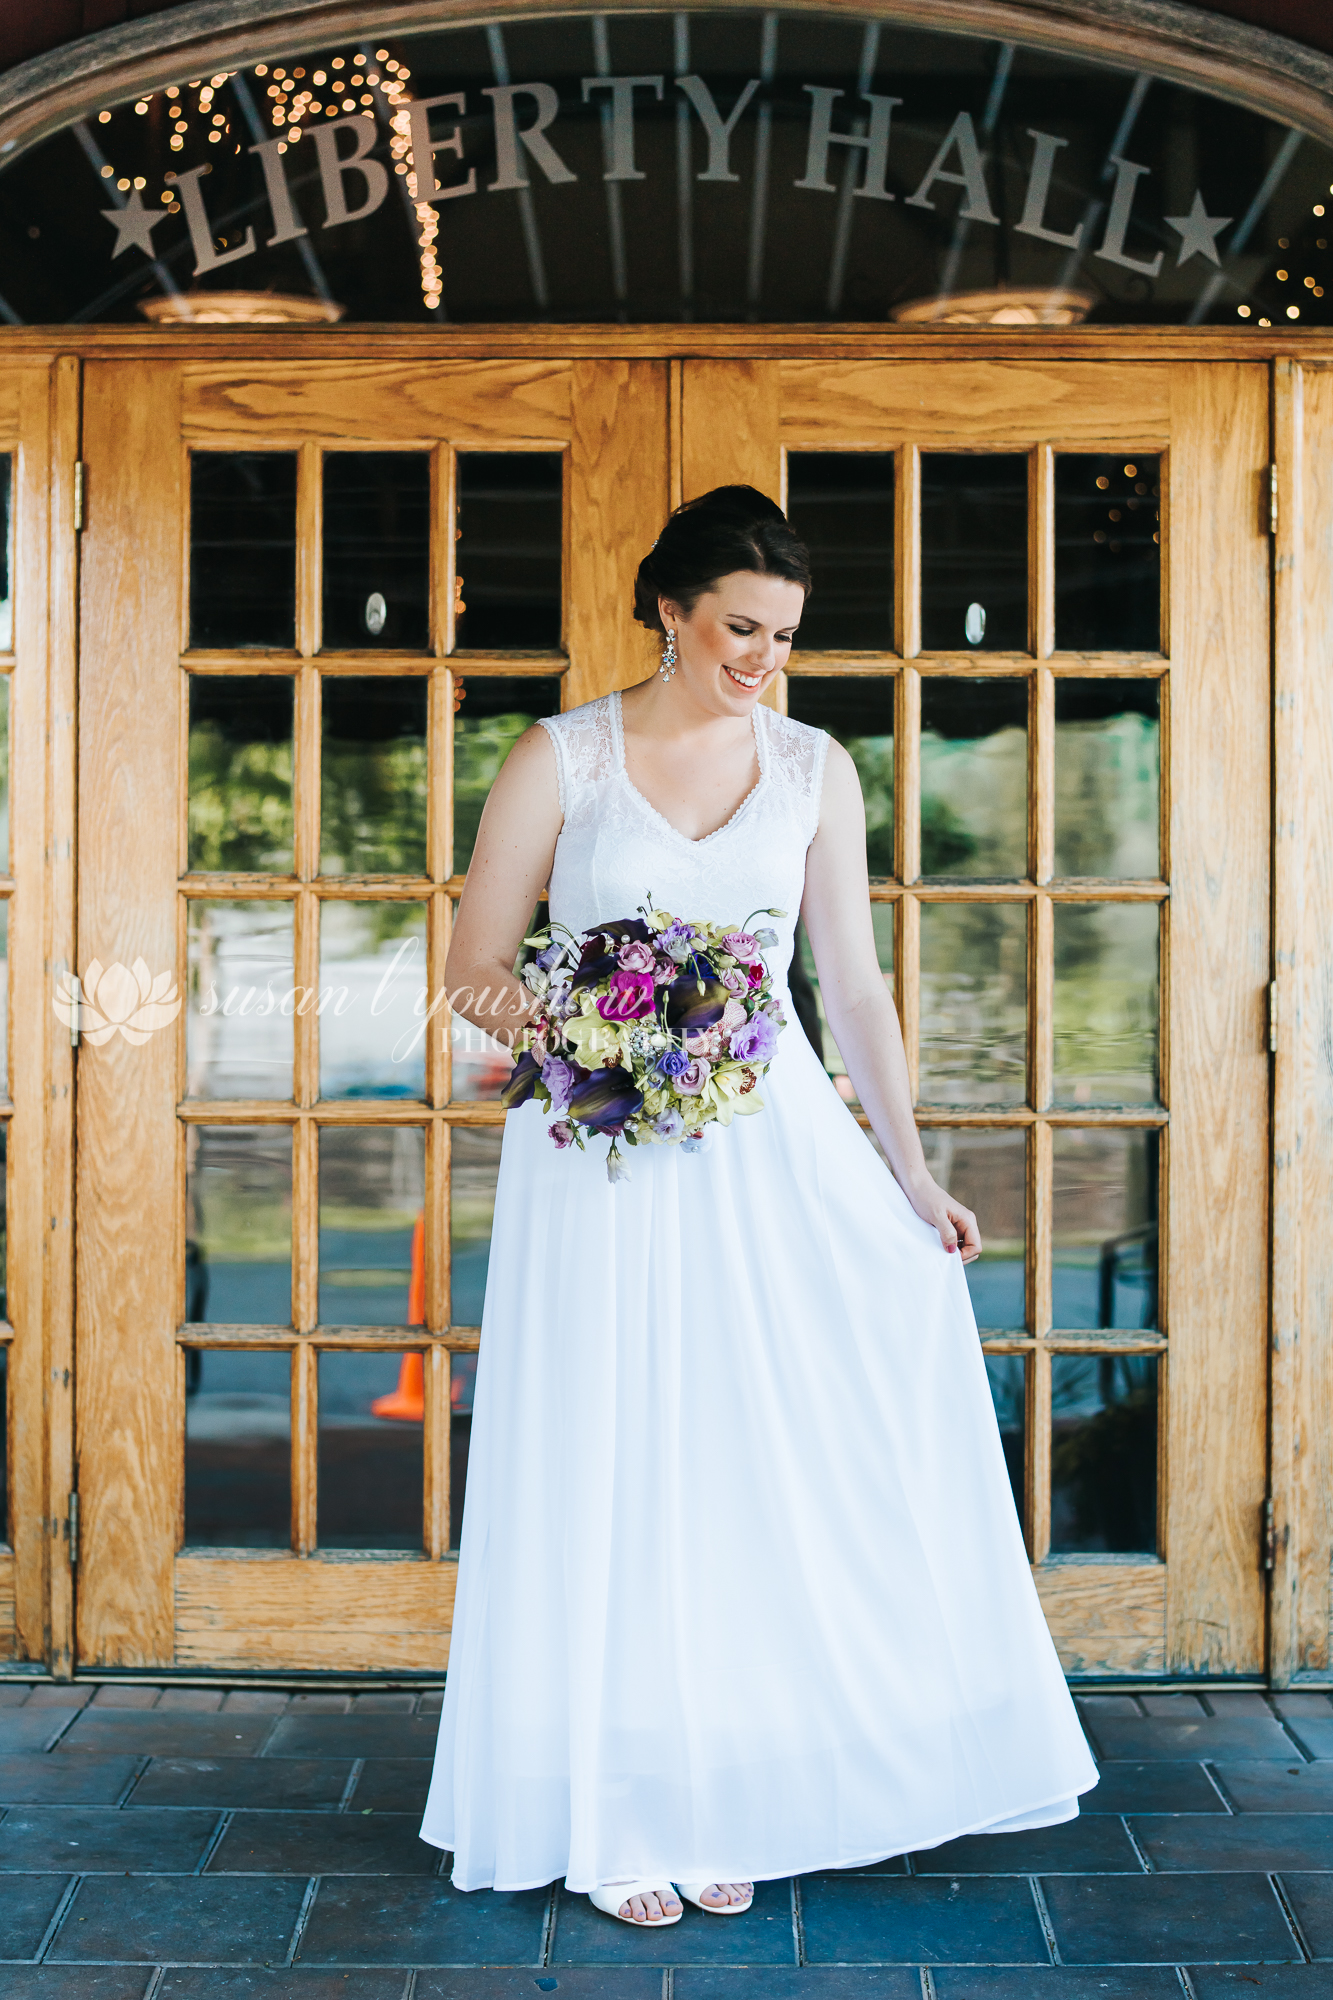 Adena and  Erik Wedding 05-17-2019 SLY Photography-82.jpg